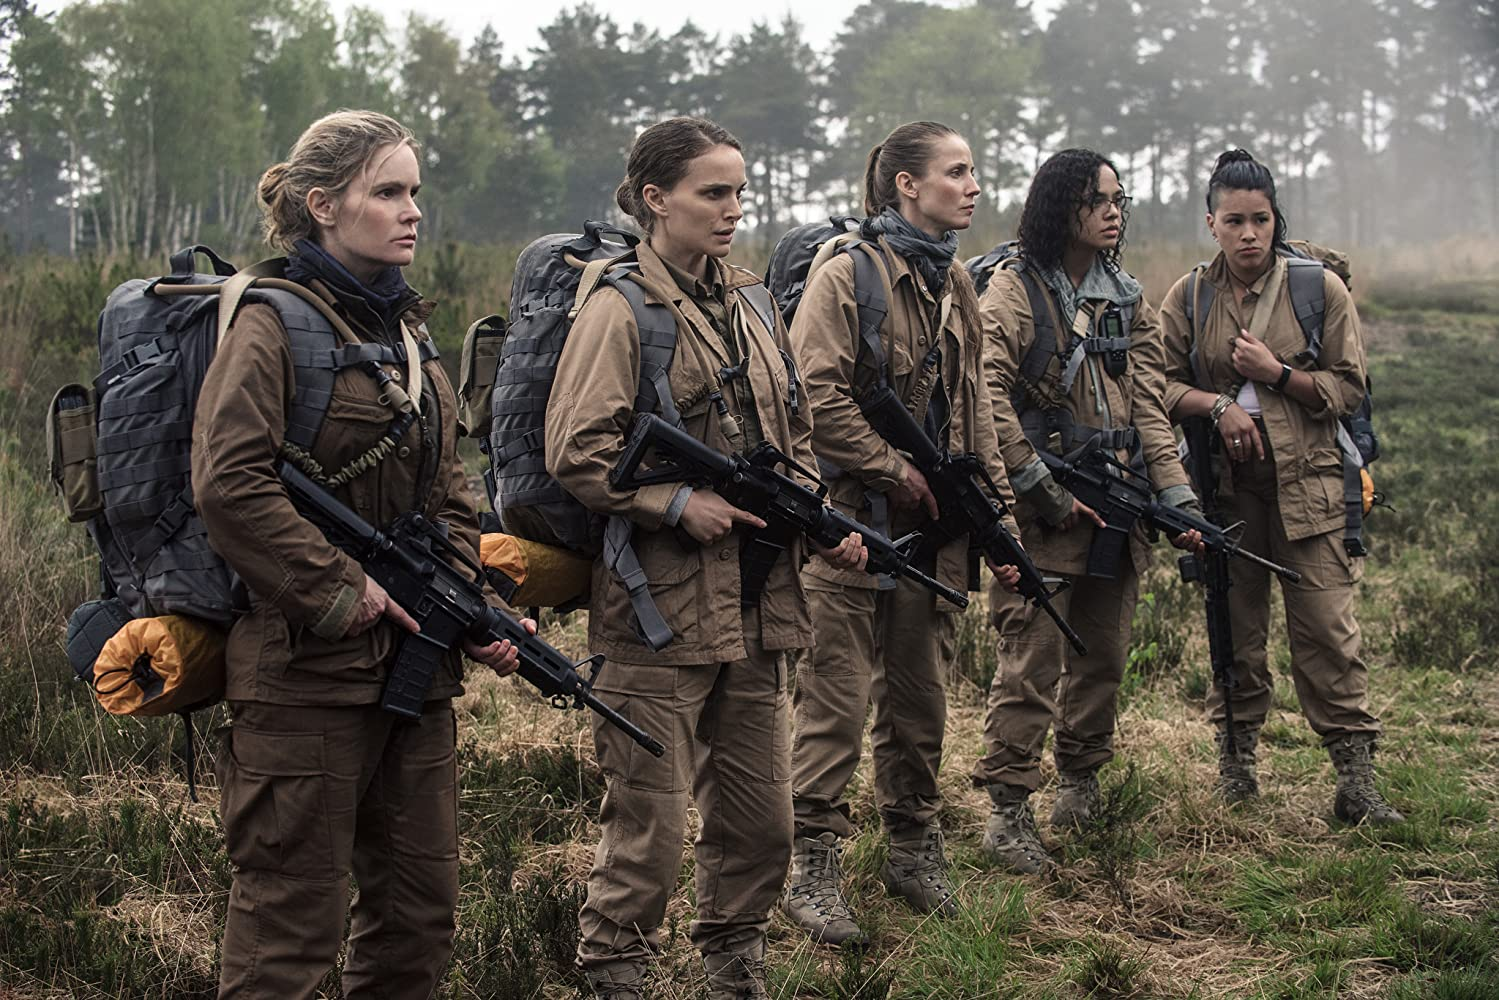 Natalie Portman, Jennifer Jason Leigh, Tuva Novotny, Gina Rodriguez, and Tessa Thompson in Annihilation (2018)